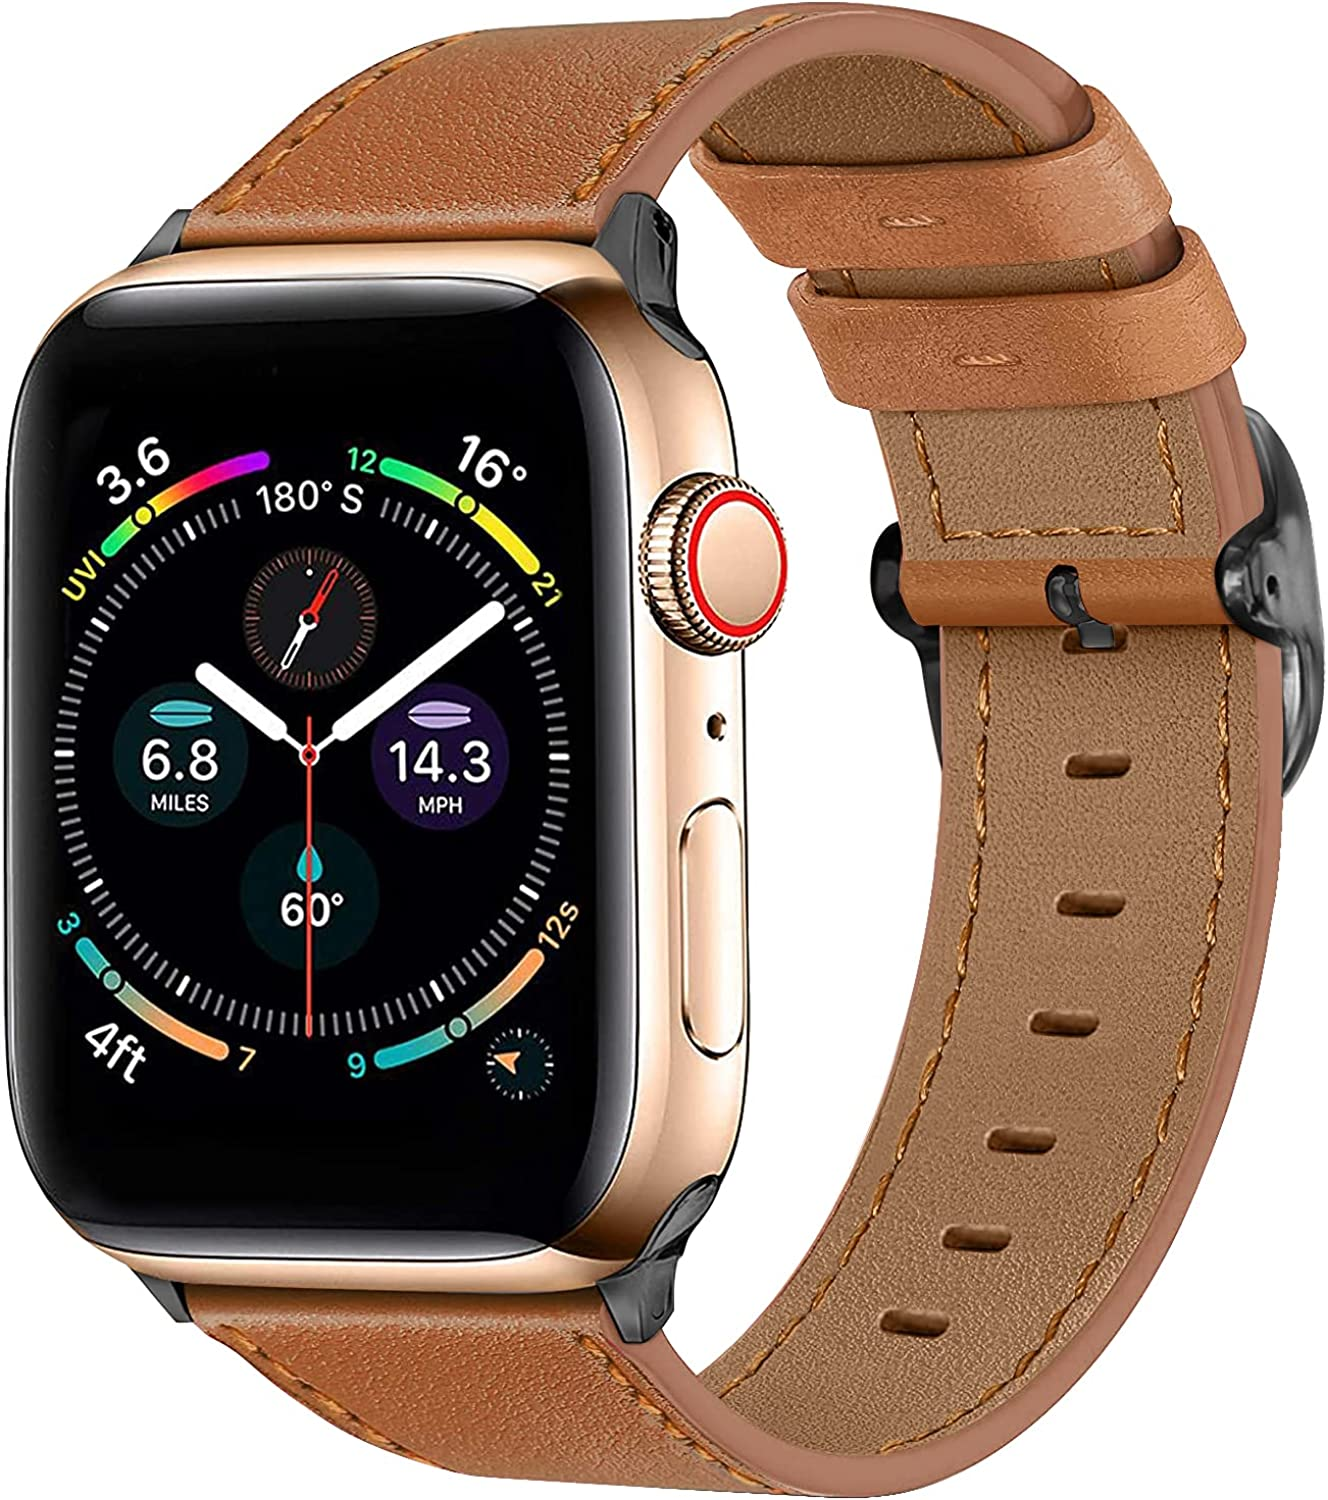 IFECCO Leather Bands Compatible with Apple Watch Band 38mm 40mm 42mm 44mm, Vintage Genuine Leather Adjustable Replacement Strap Women Men for iWatch SE & Series 6 5 4 3 2 1